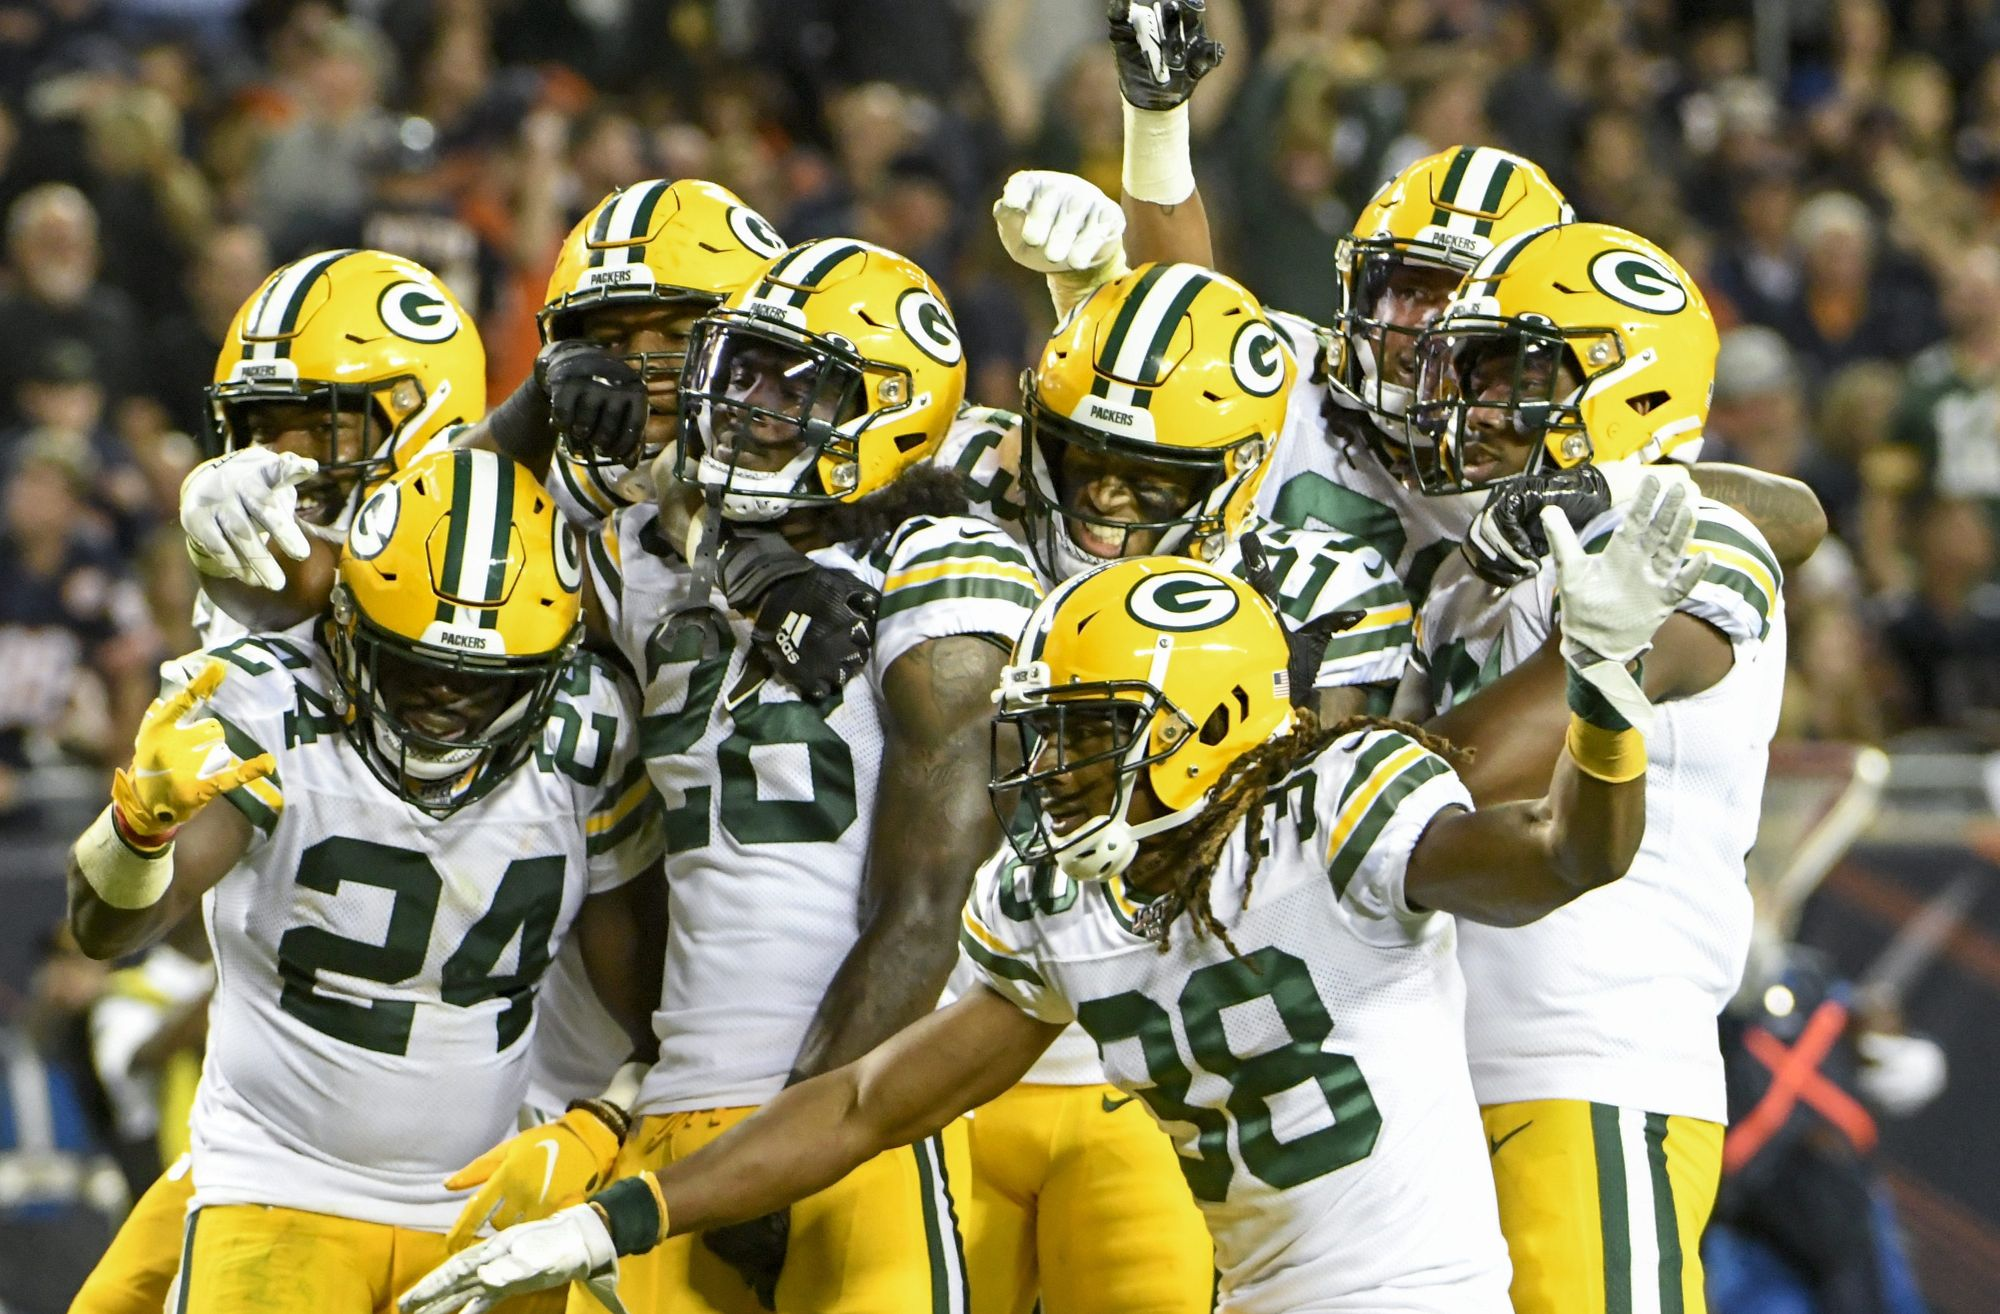 Packers Beat Bears in a Low-scoring Opener